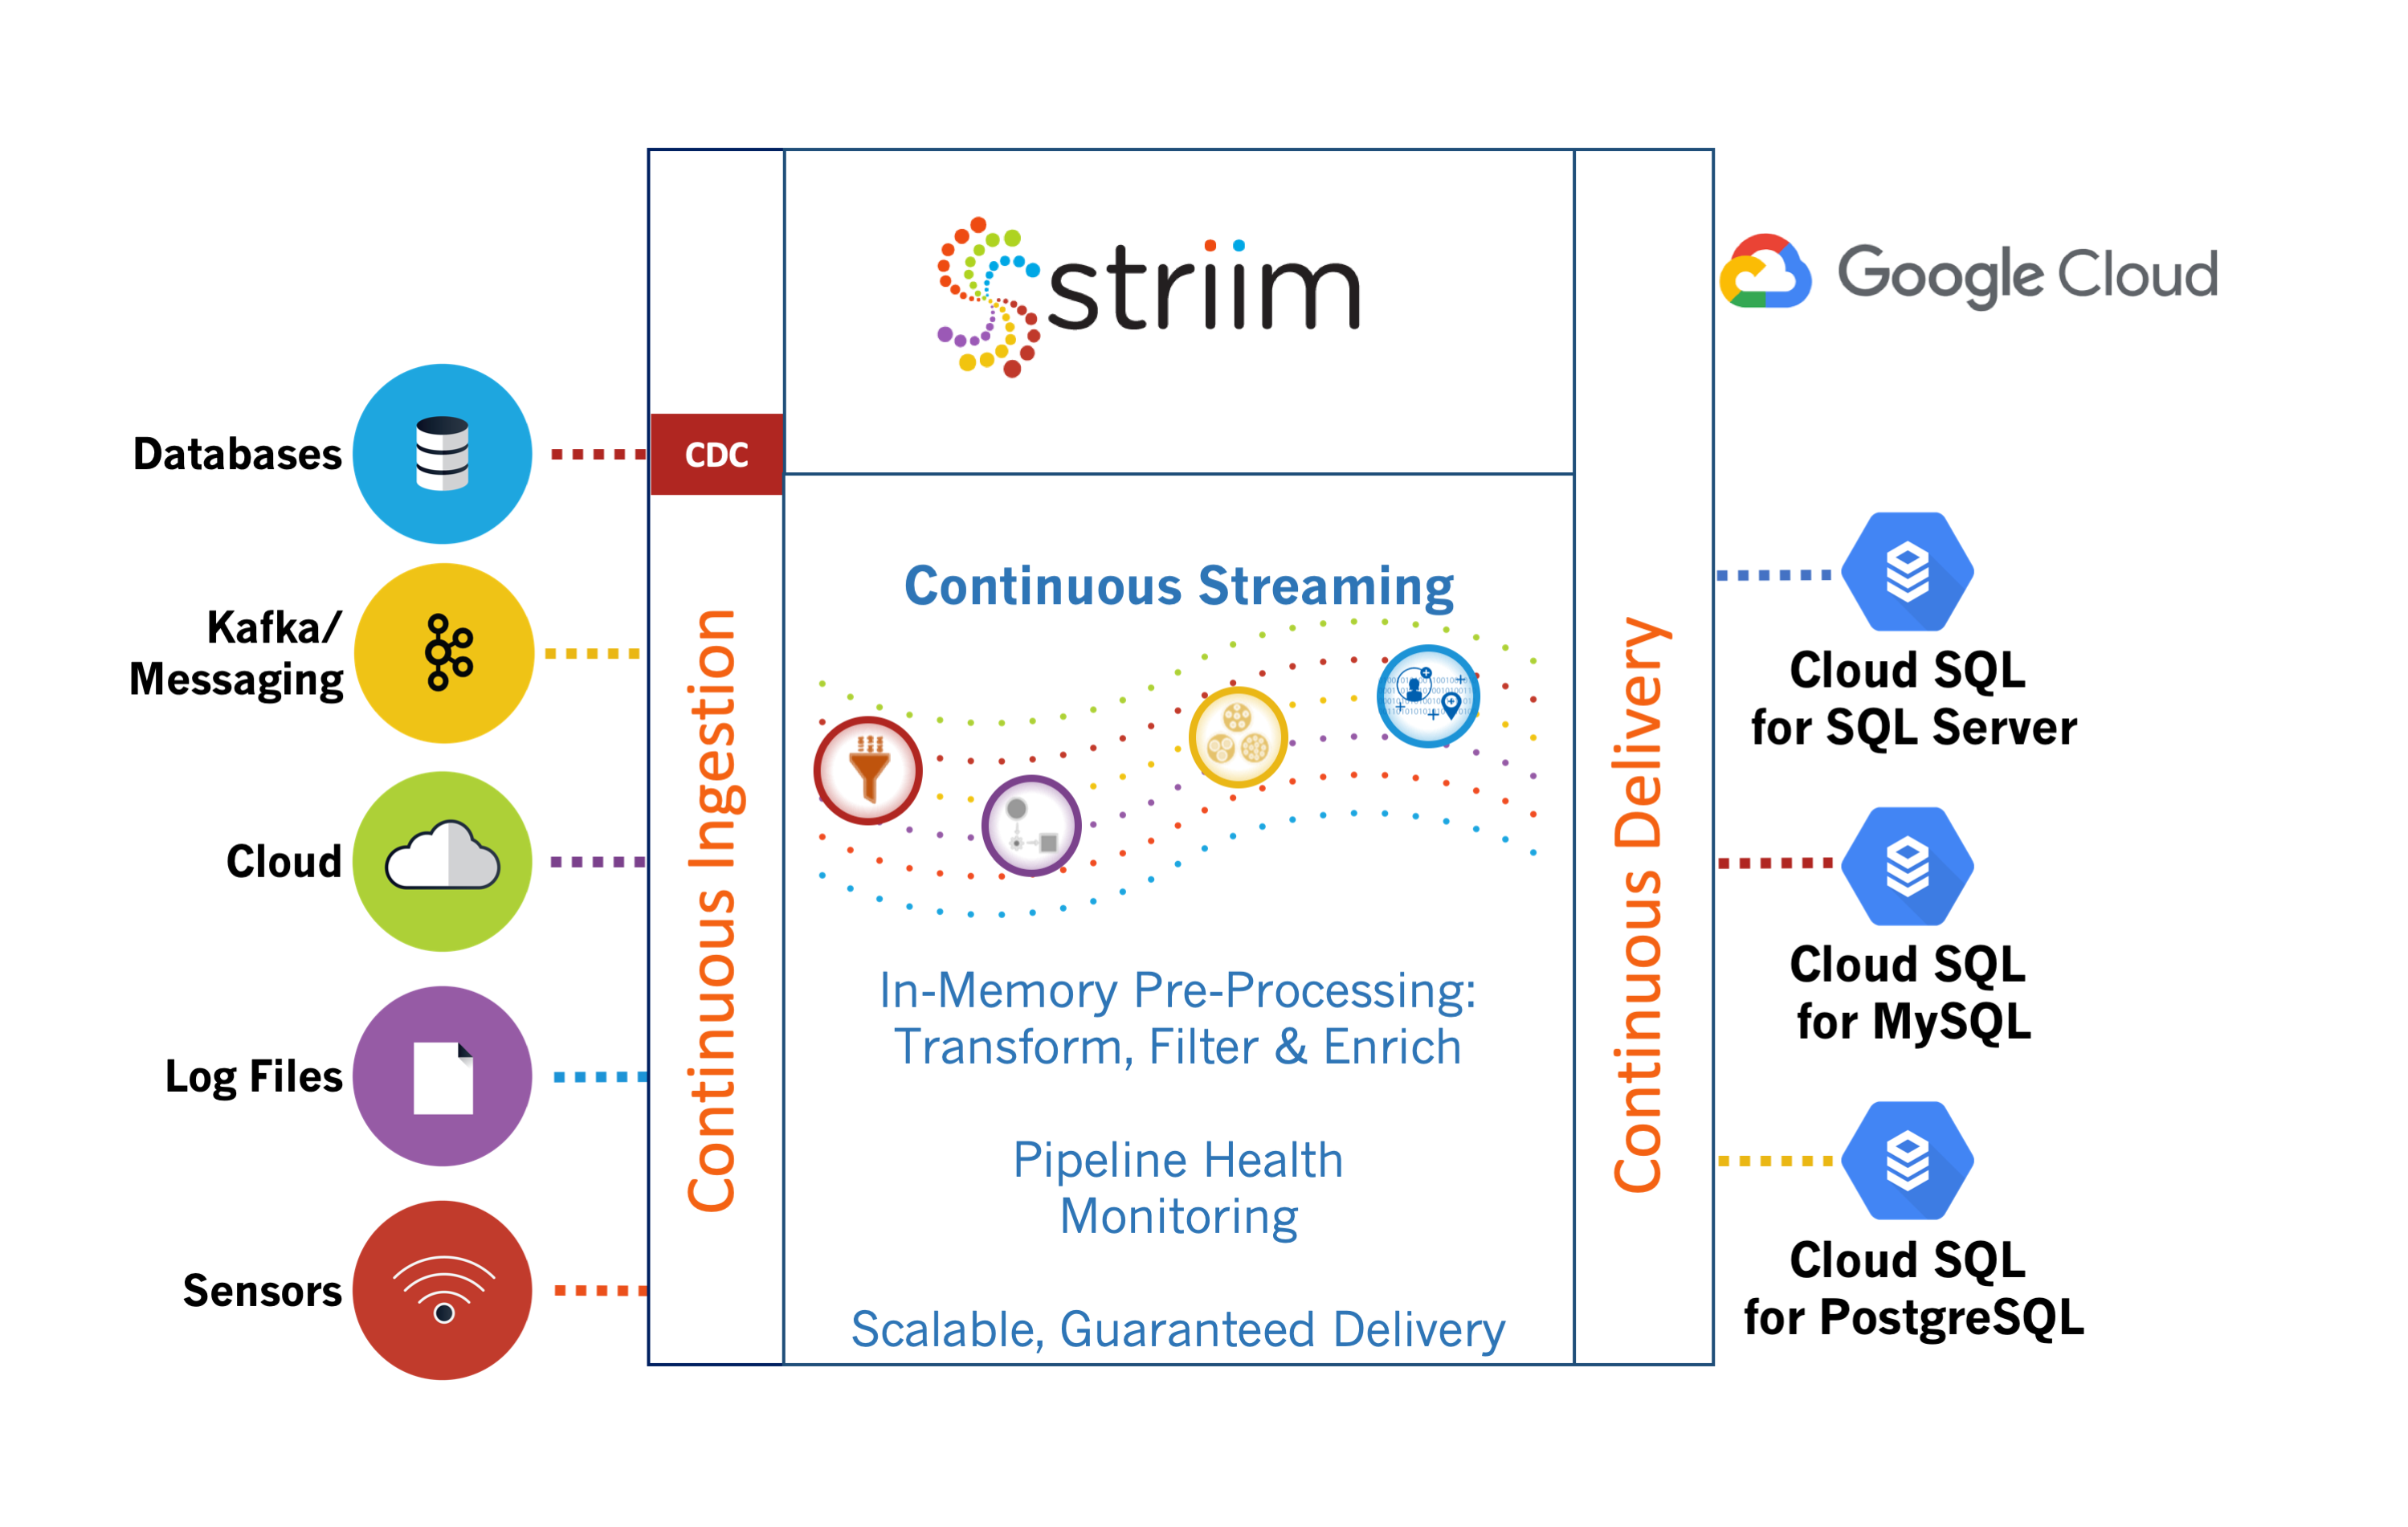 Striim for Google Cloud SQL